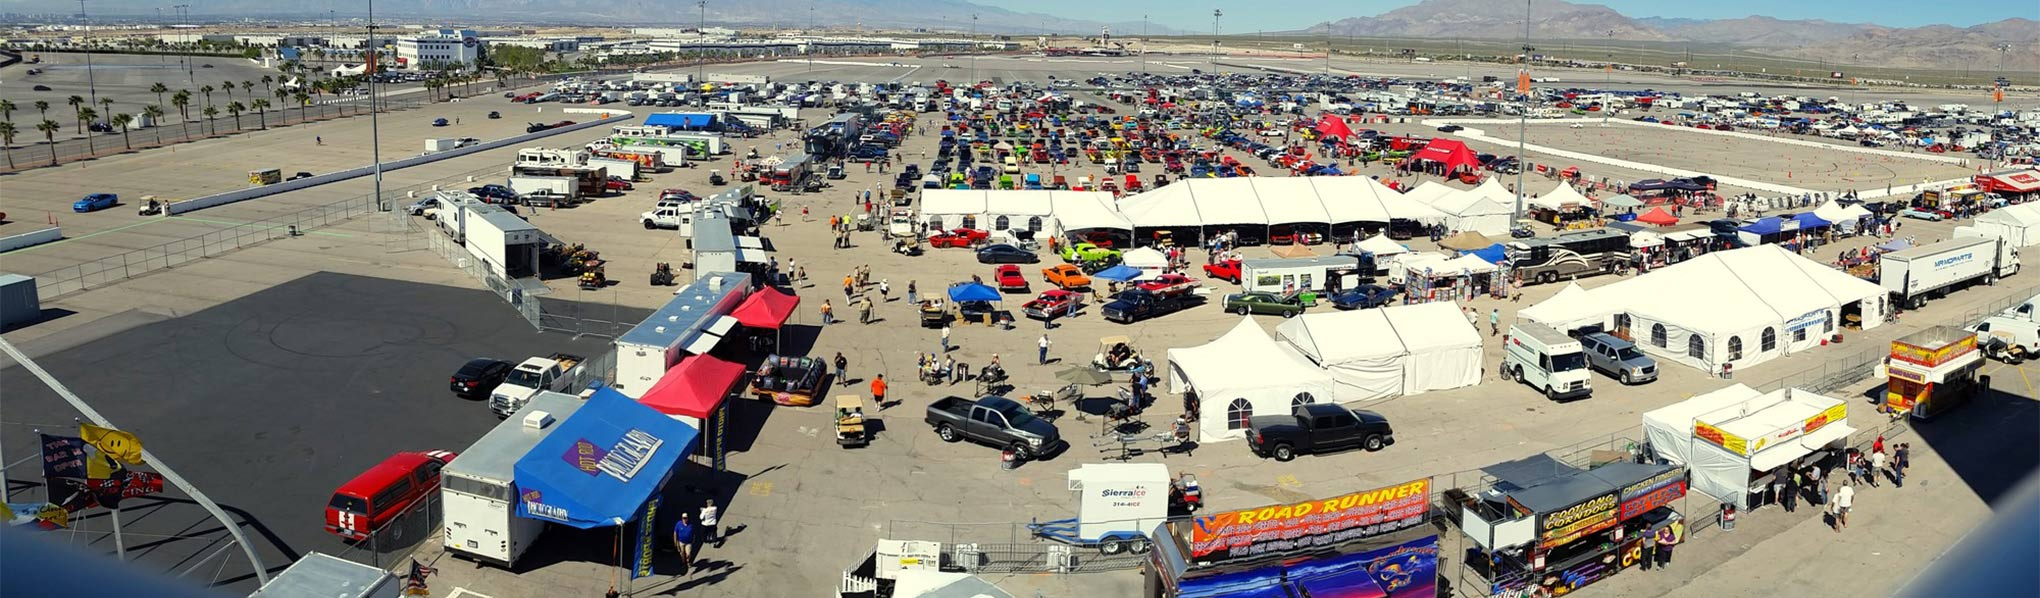 """The event we all know as """"Mopars at the Strip""""—also called as MATS—is headed to Las Vegas again on March 18 - 20, 2016. We'll be there covering the action, but more importantly, we'll be holding our Scat Pack Challenge!"""